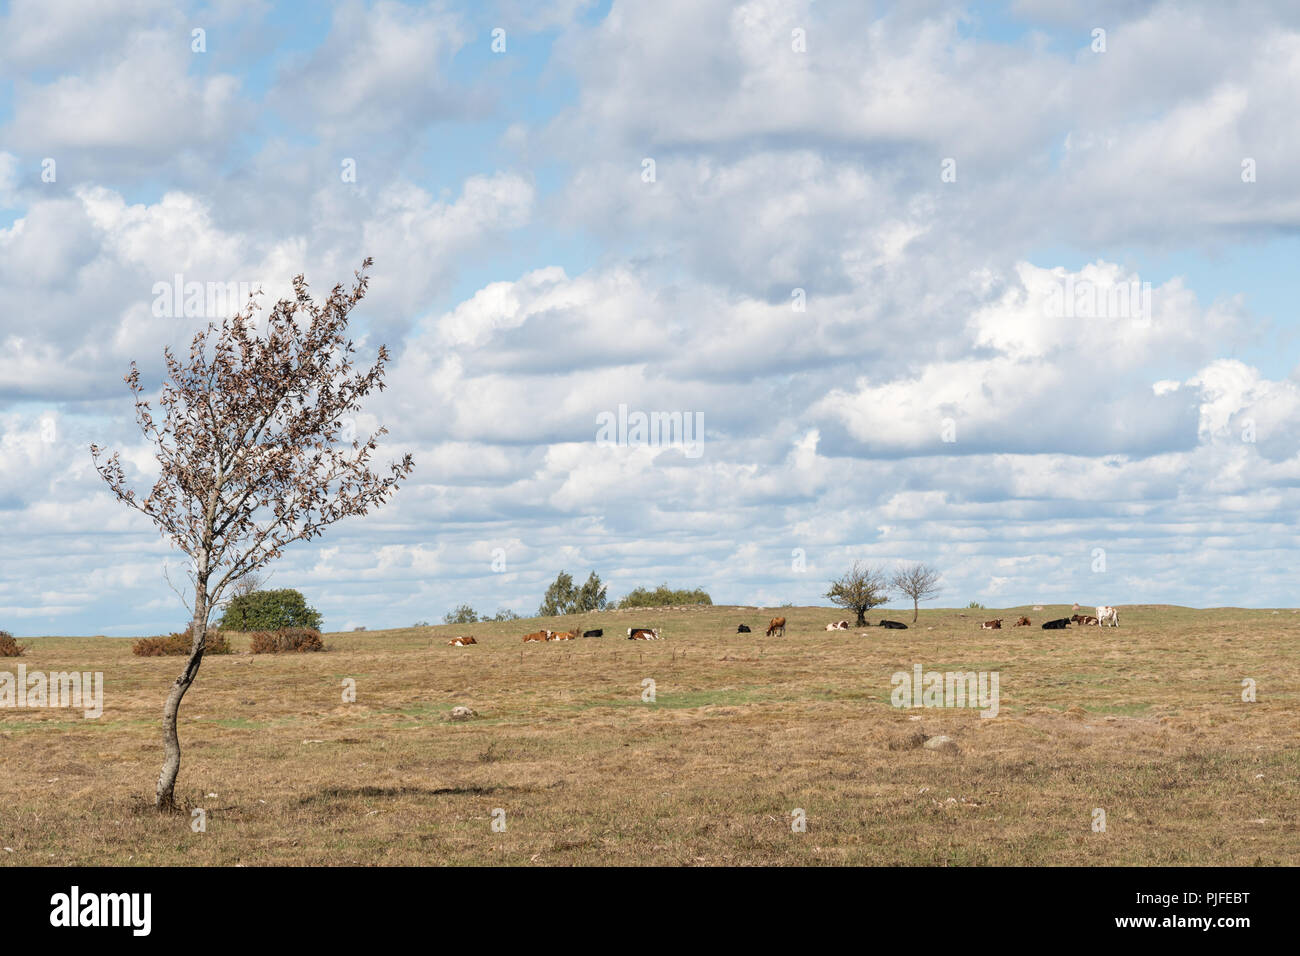 Dry swedish landscape with grazing cattle at the island Oland - Stock Image